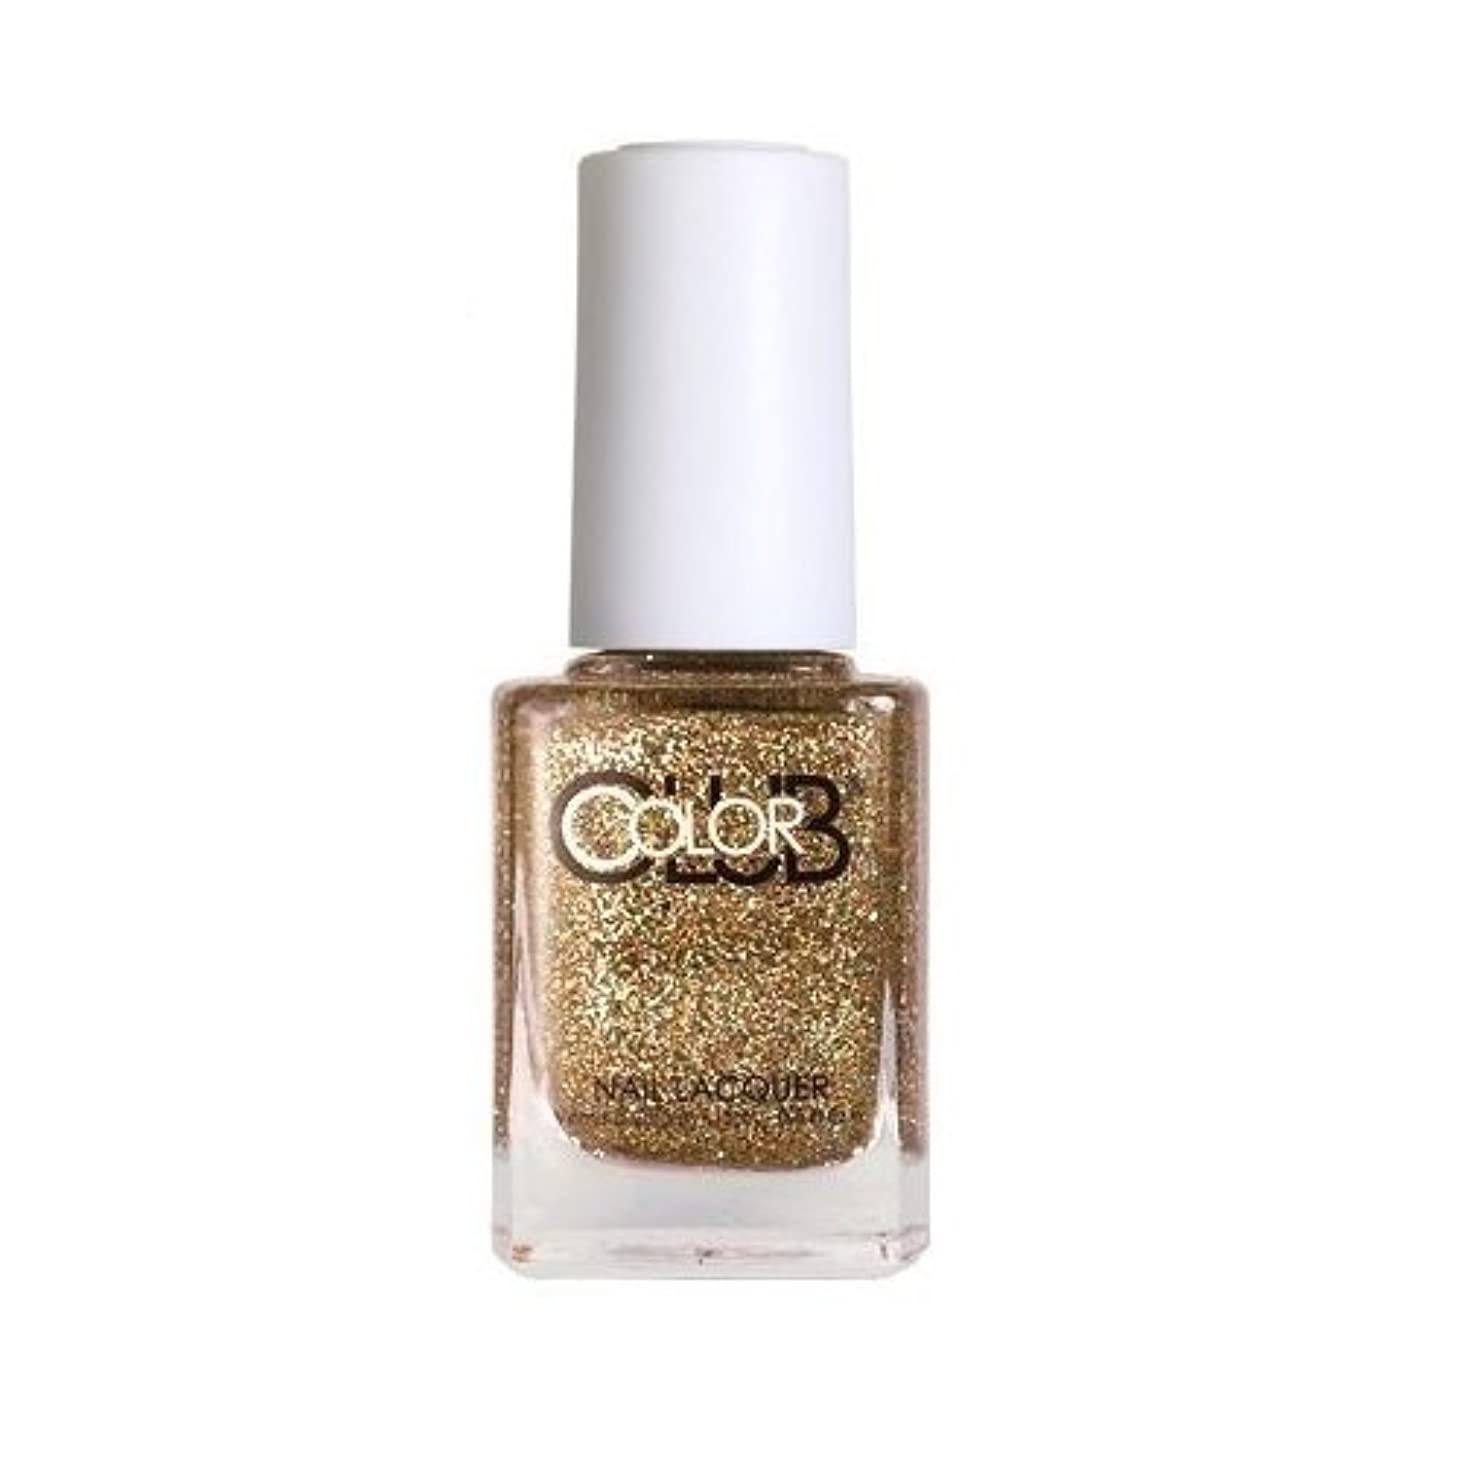 DUP フォーサイス COLOR CLUB D124 Topaz for You! (15mL)